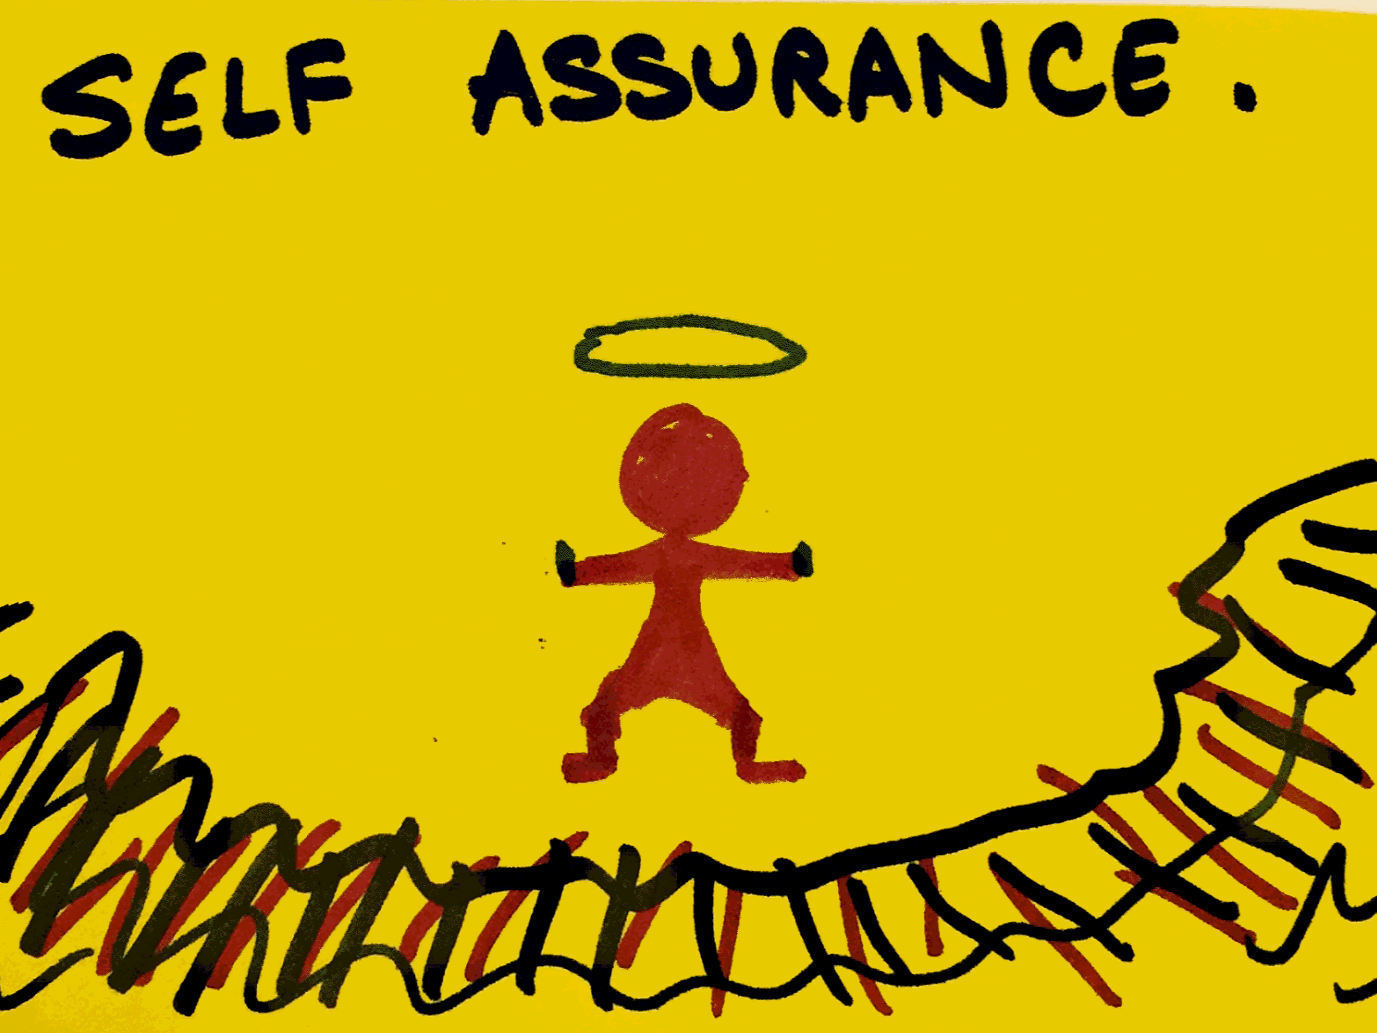 Self-Assurance StrengthsFinder Singapore Man Halo Moving Forces